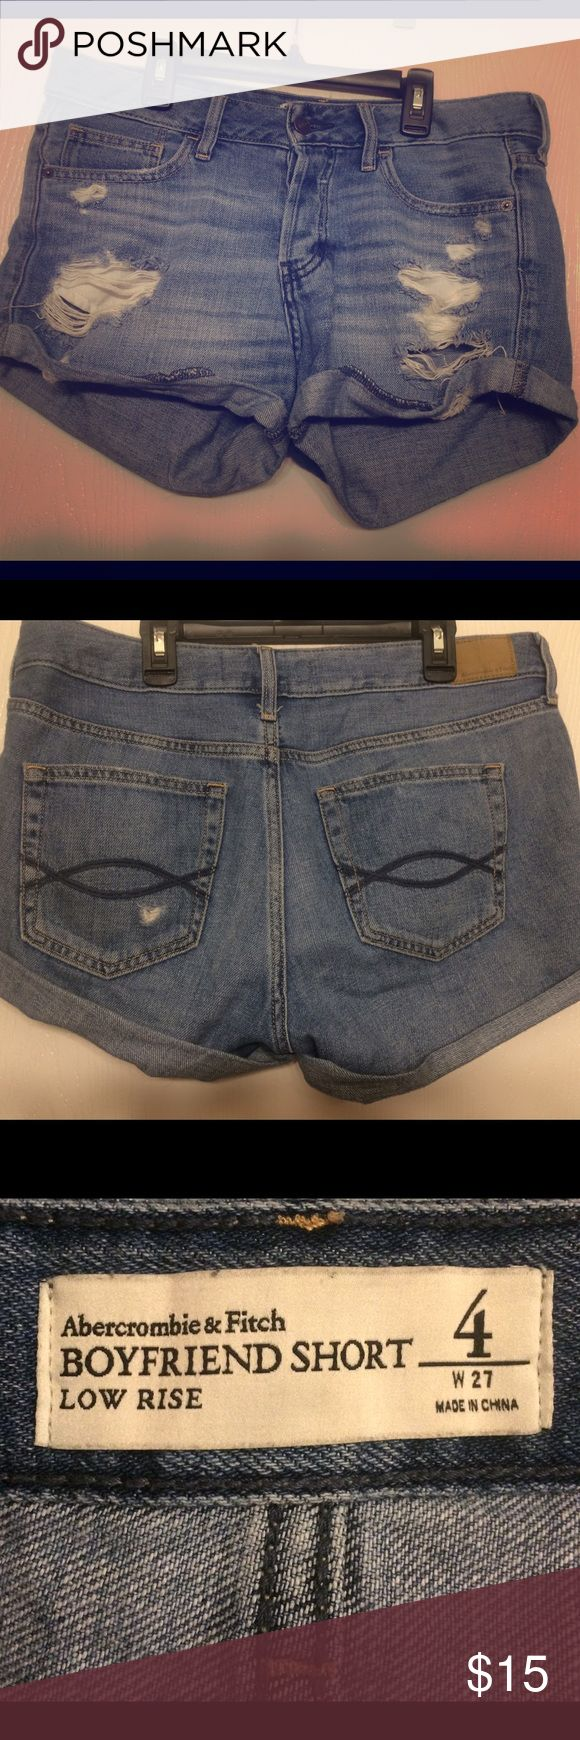 Abercrombie and Fitch boyfriend shorts Soft A&F boyfriend/slouchy jean shorts. In good condition, selling because they are too big. They say they're a size 4, but id say these fit more of a size 6 and would still have that boyfriend fit. Abercrombie & Fitch Shorts Jean Shorts